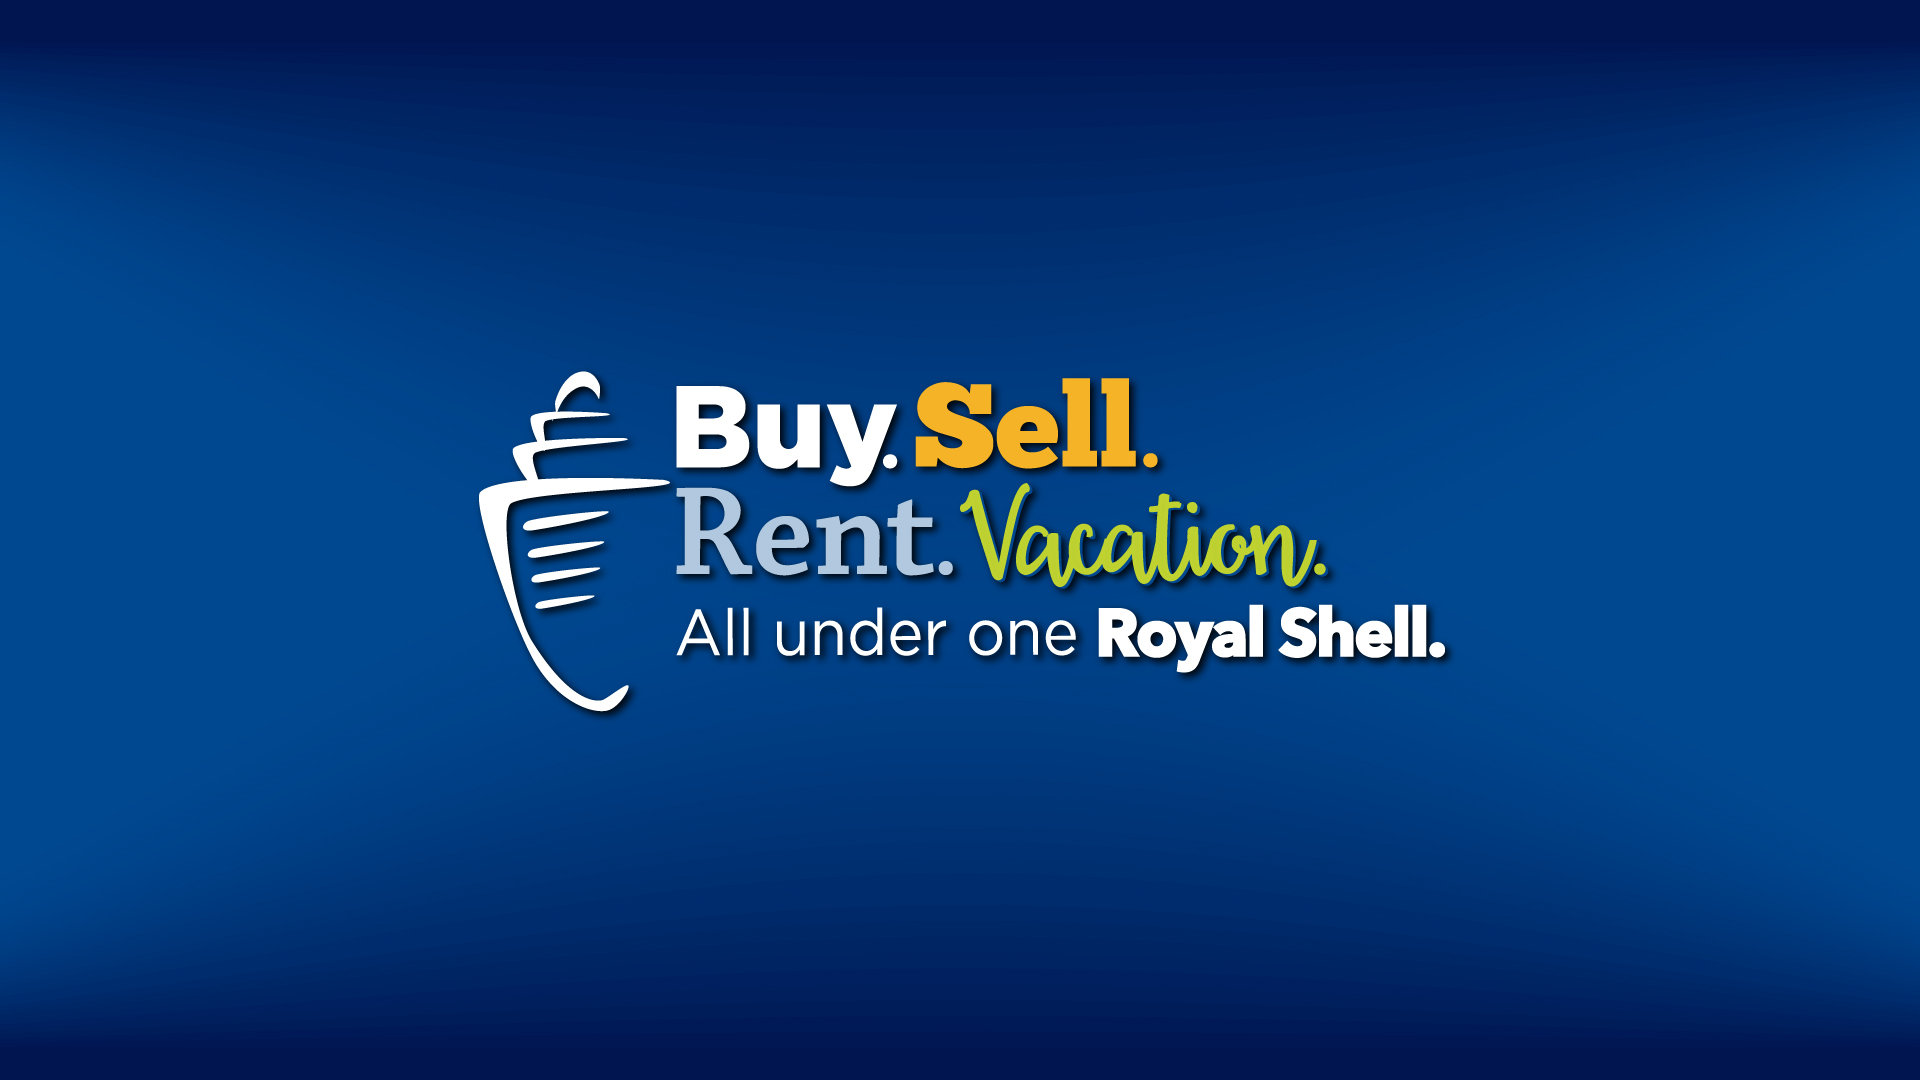 Royal Shell Real Estate Helps First time buyers